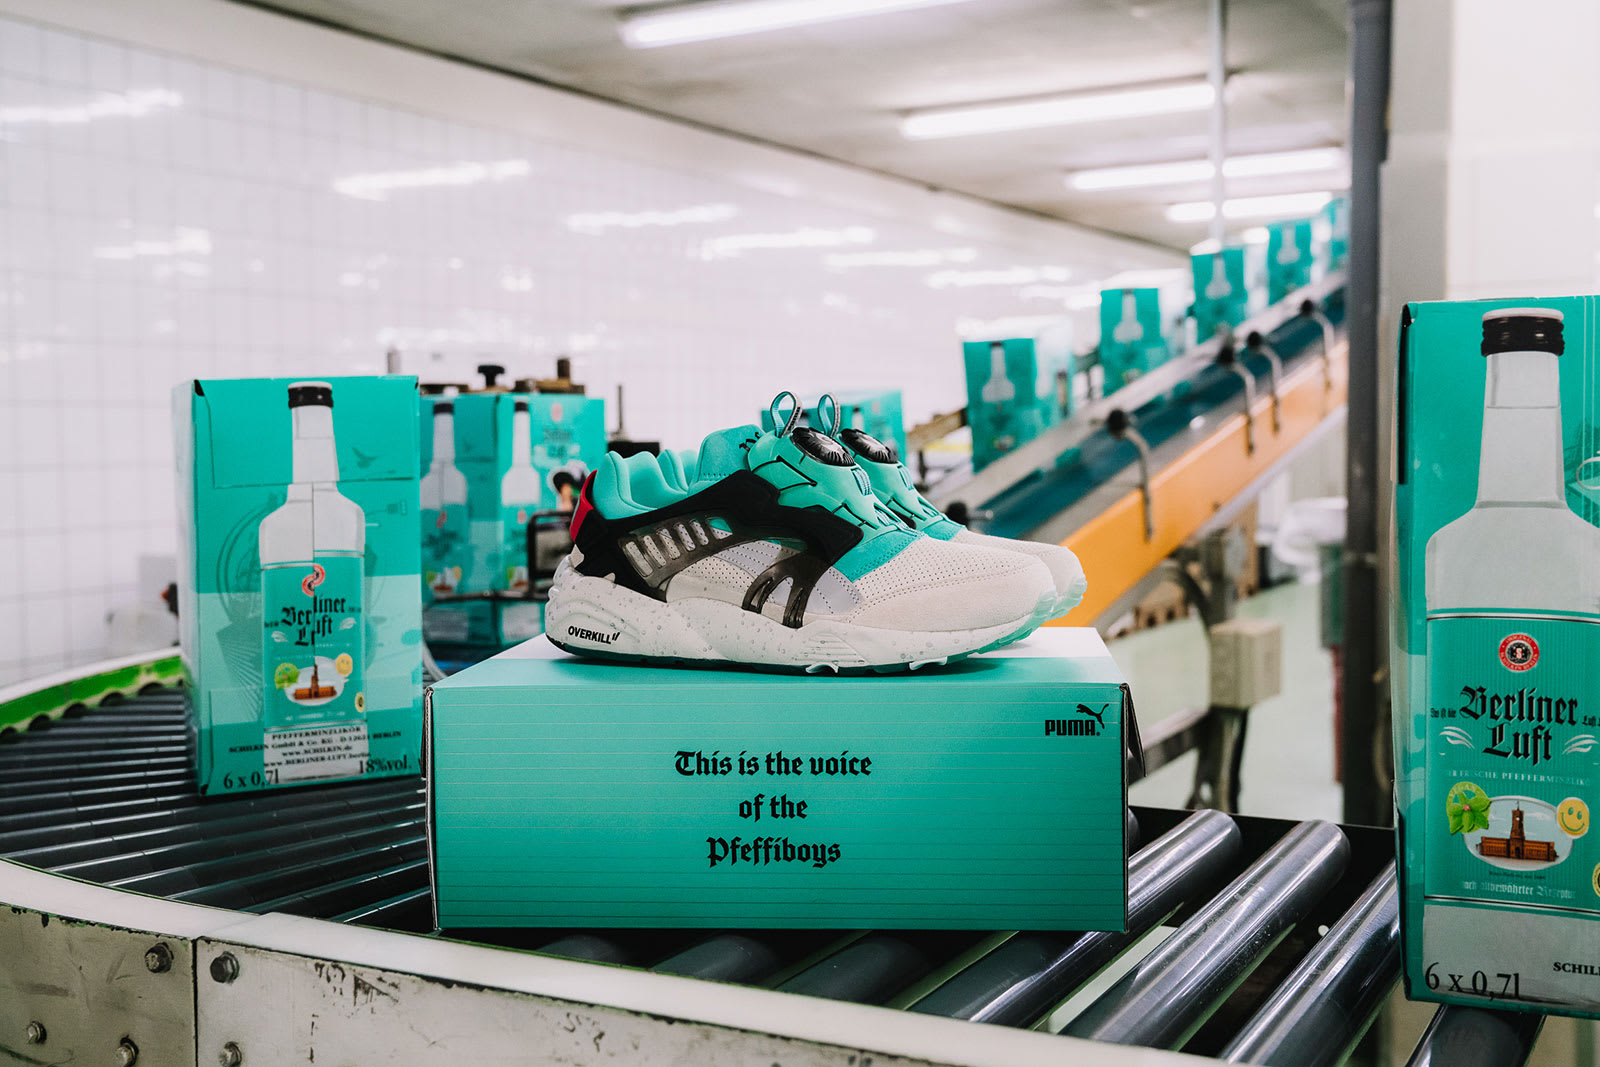 END. Features | PUMA x Overkill 'Pfeffiboys' - Launching 25th November